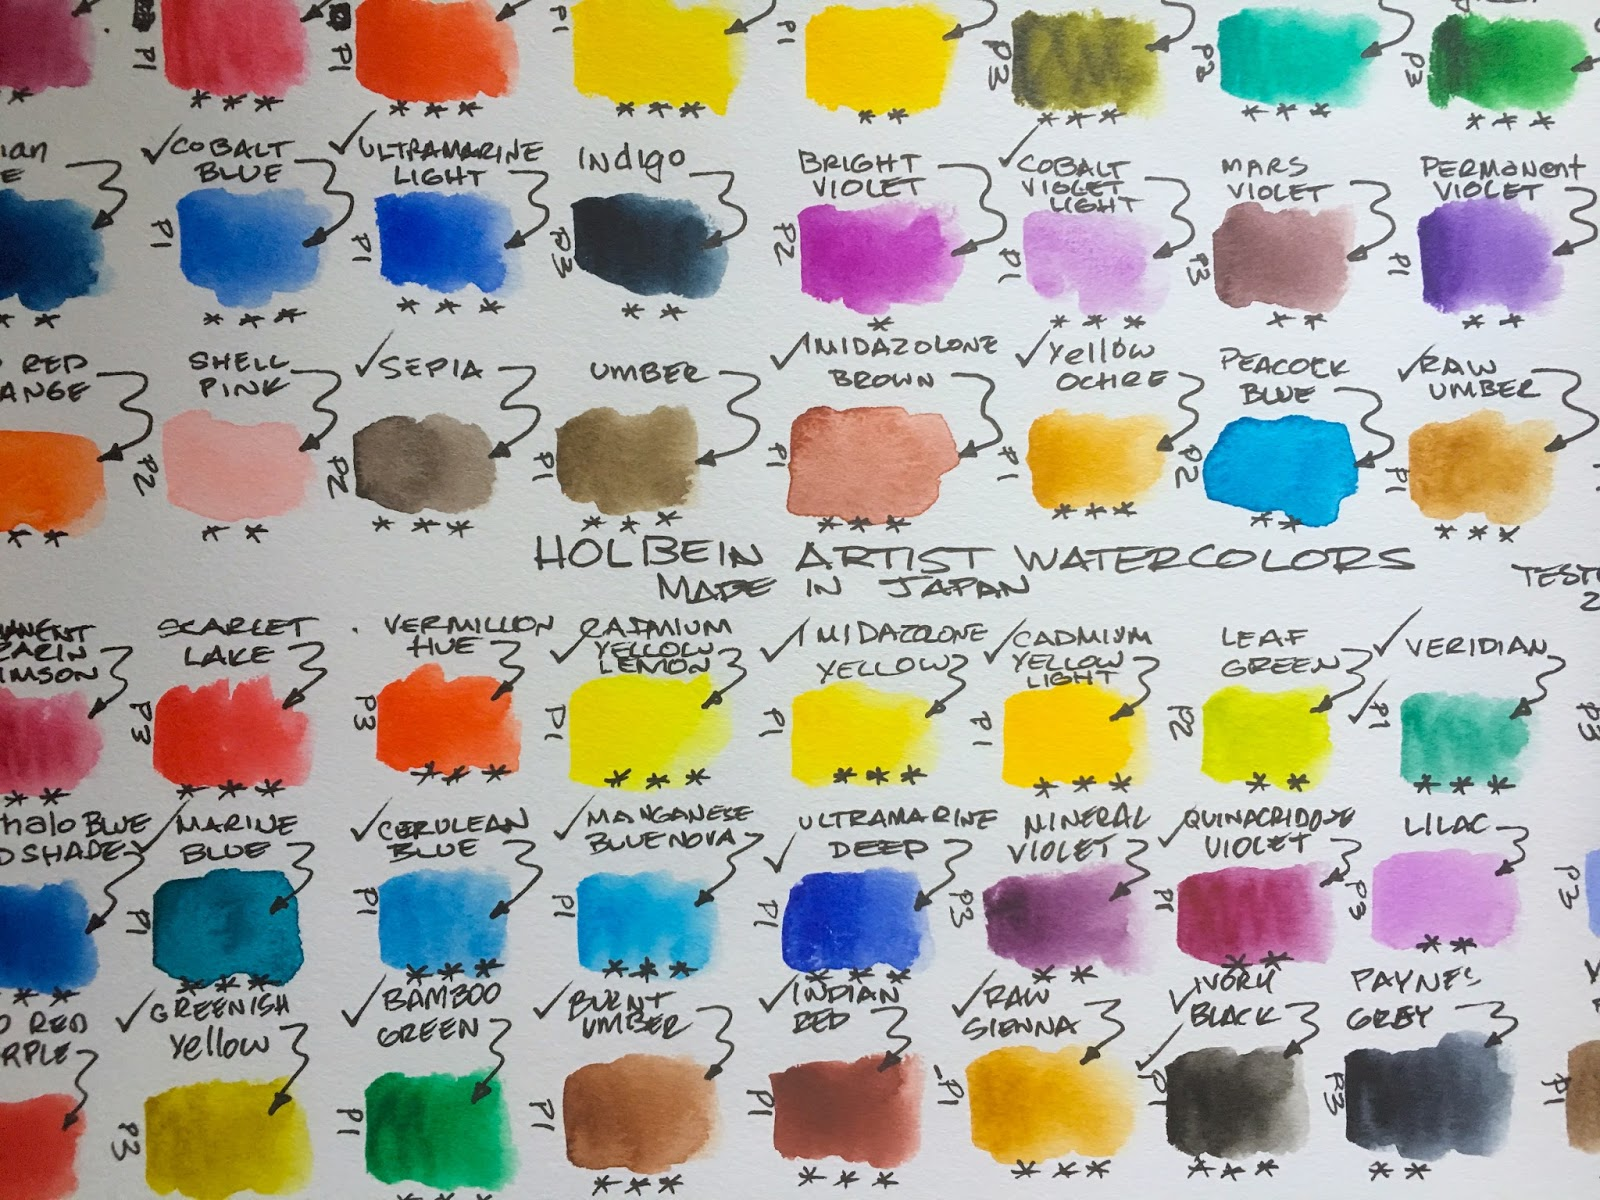 Owings art studio the best watercolors top 10 like their oil paints holbein puts an emphasis on quality and consistency these are precision made paints with lots of single pigment colors nvjuhfo Choice Image